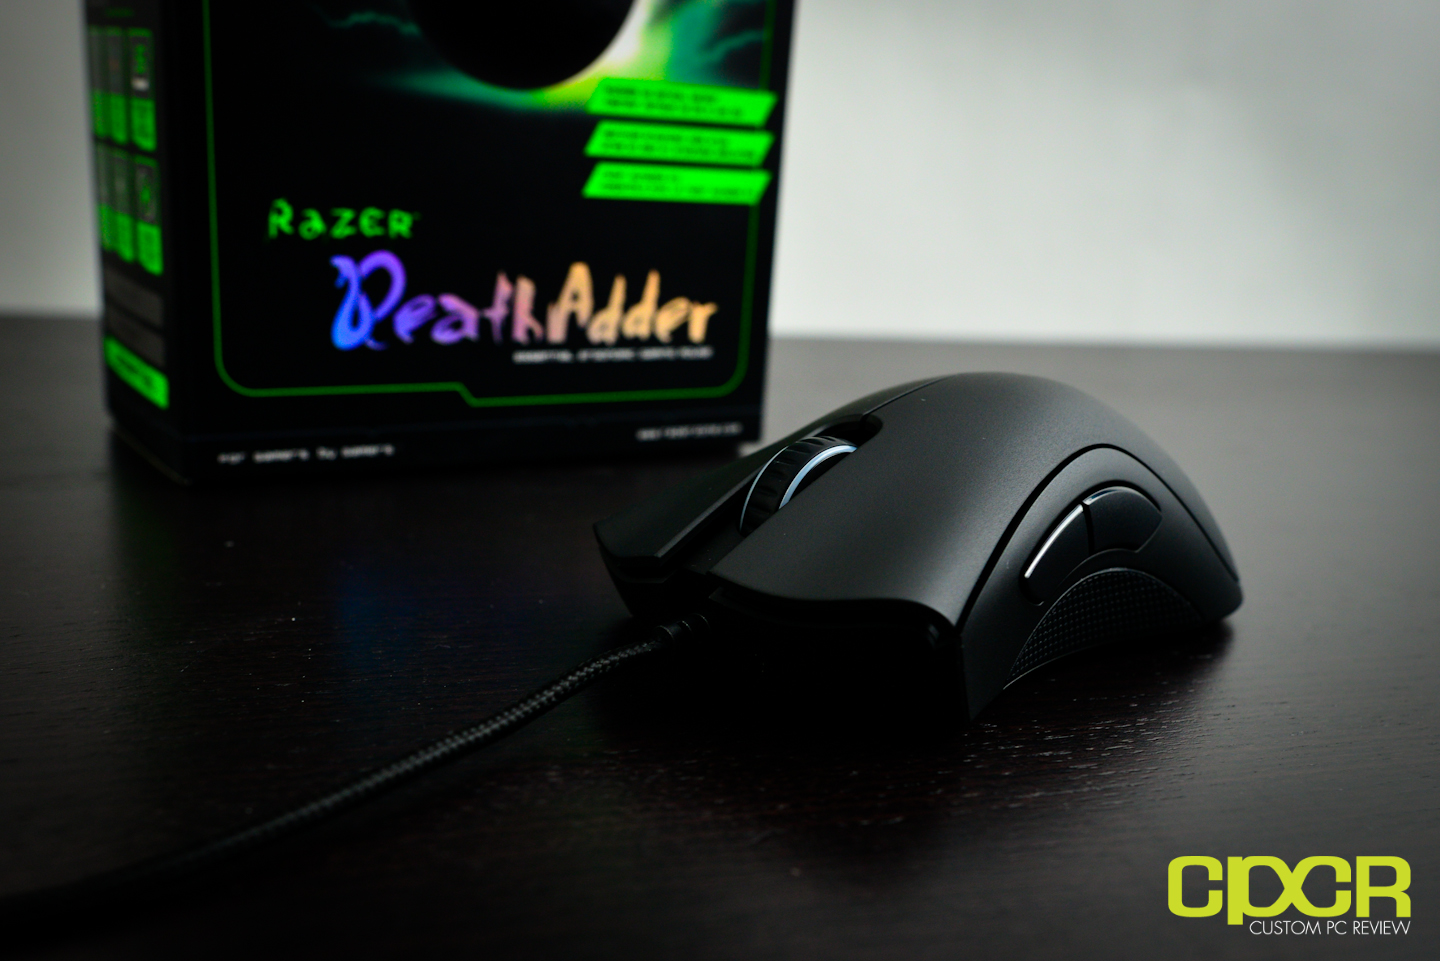 Razer DeathAdder 2013 Review | Gaming Mouse | Custom PC Review